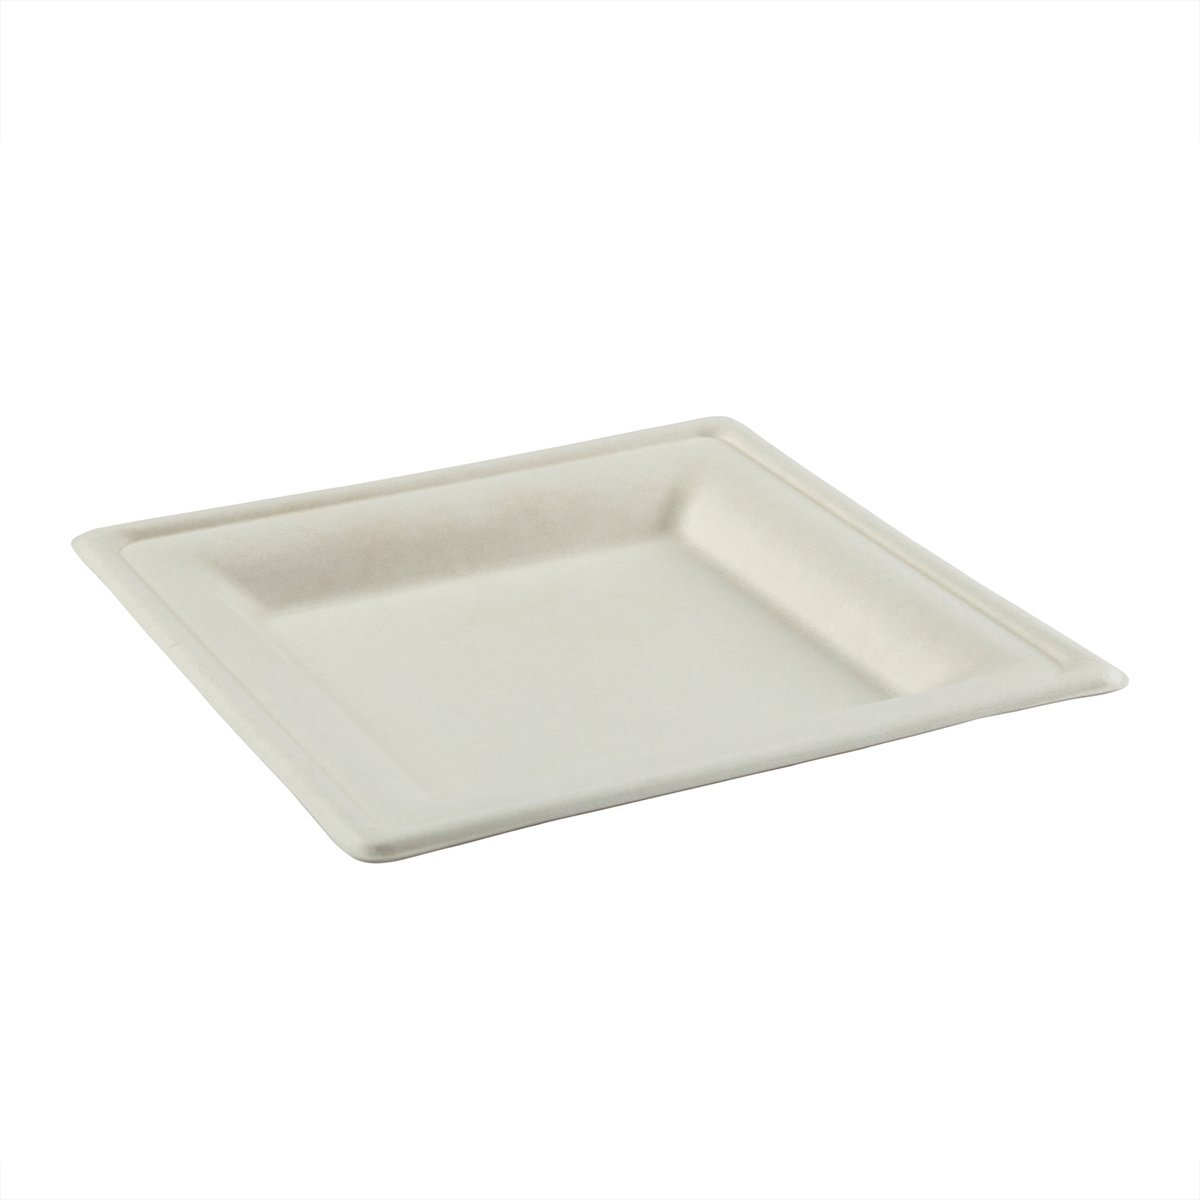 6.25 x 6.25in Square Plate Primeware Dinnerware - Bagasse Primeware